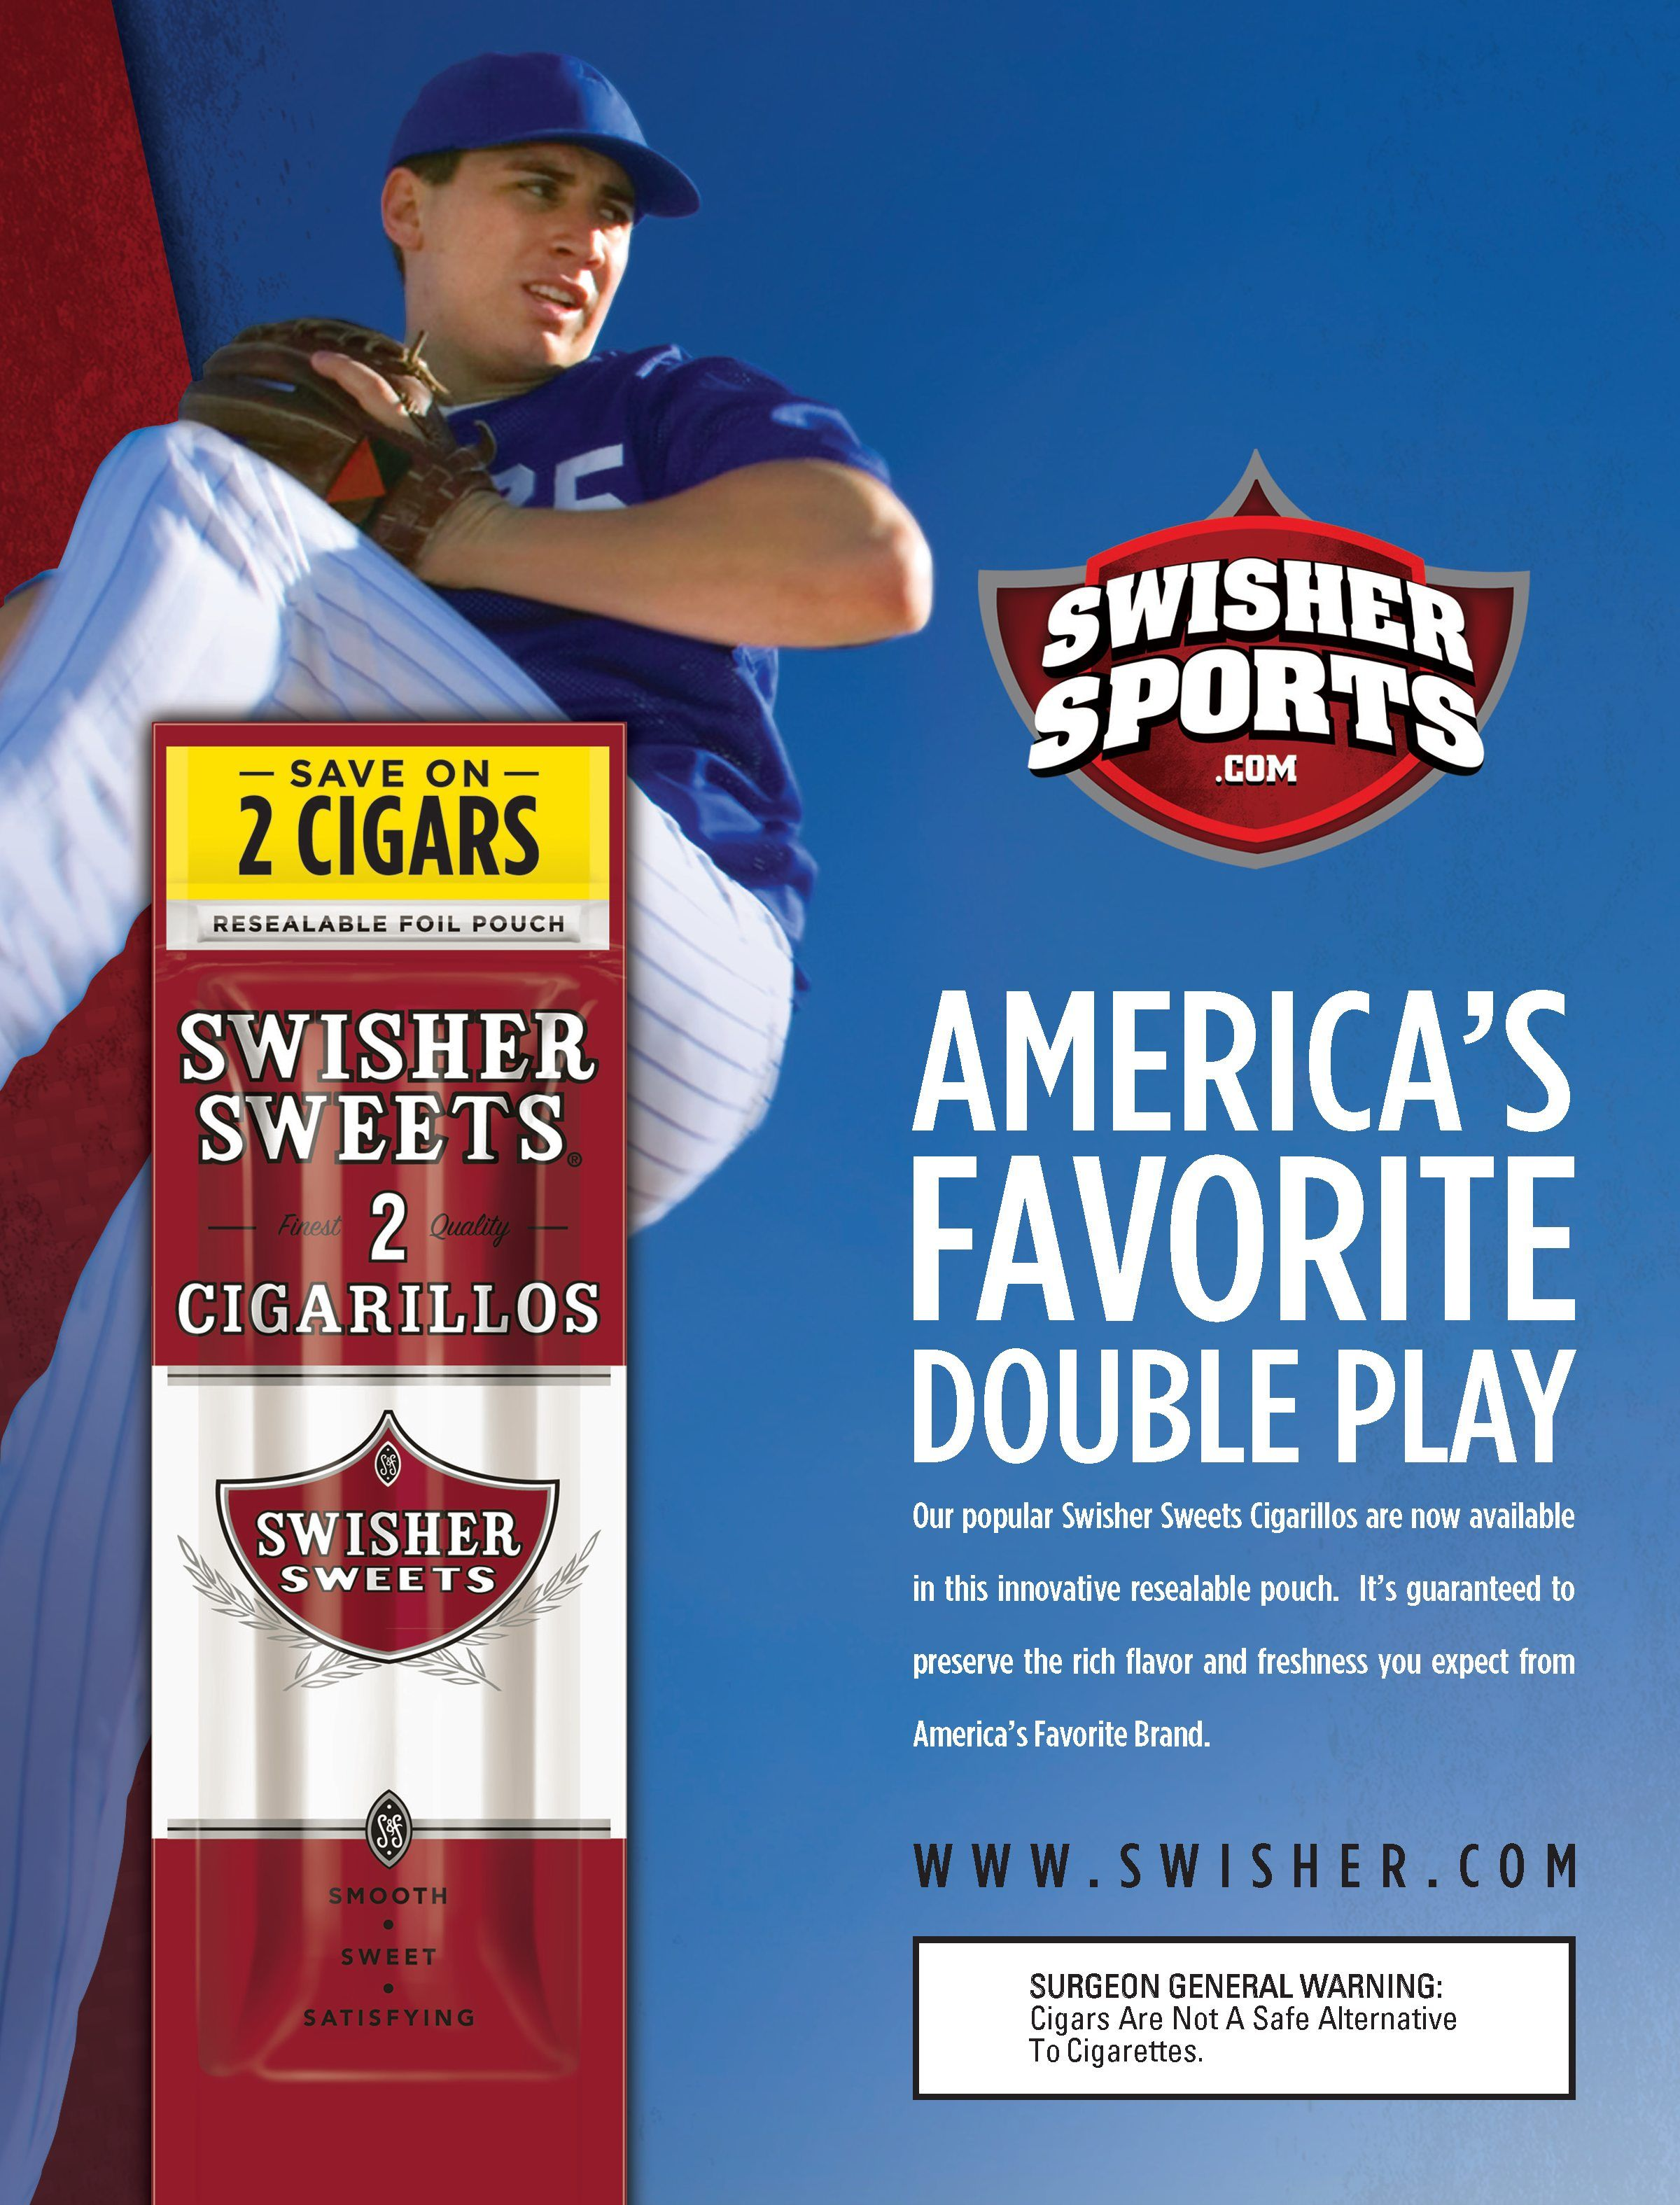 Swisher Sweets sports print ad  Client: The Design Lounge